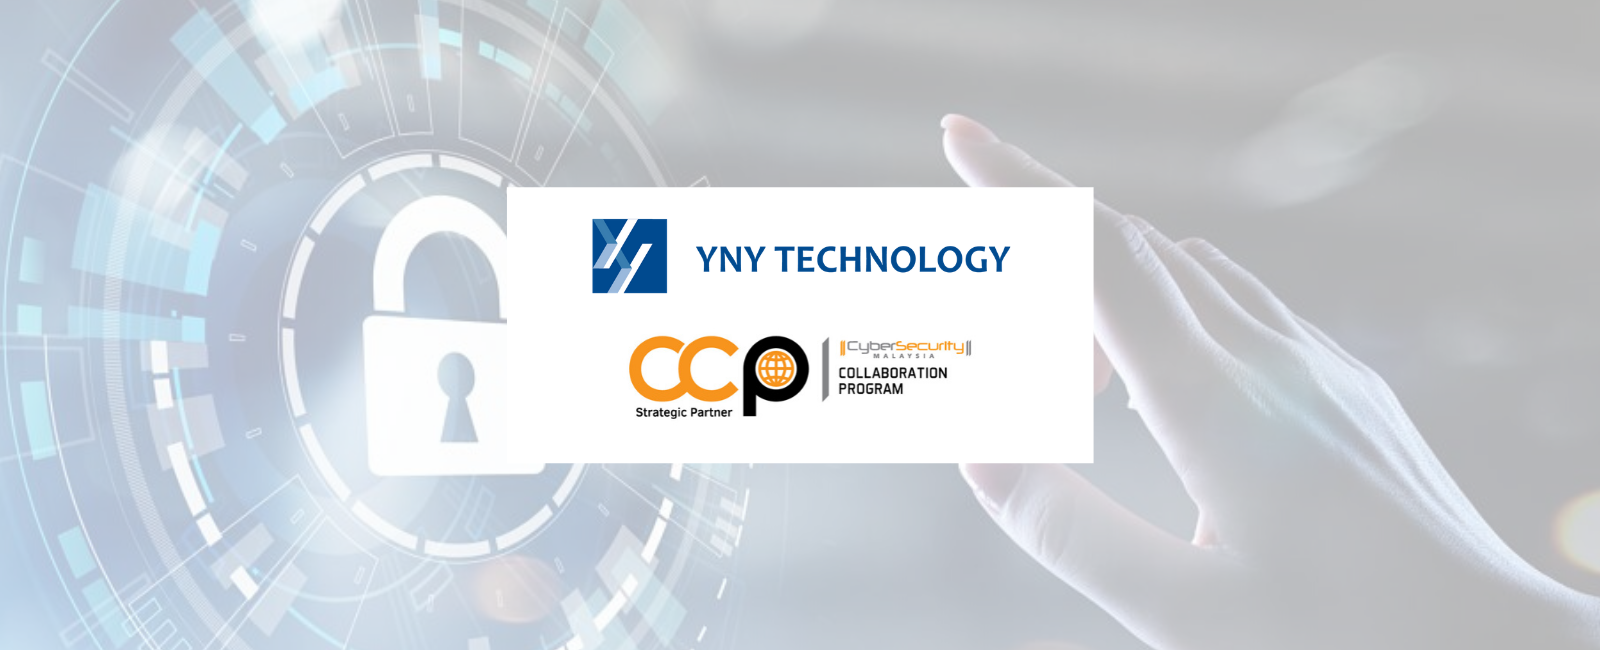 New Partnership Announcement for YNY Technology & CyberSecurity Malaysia